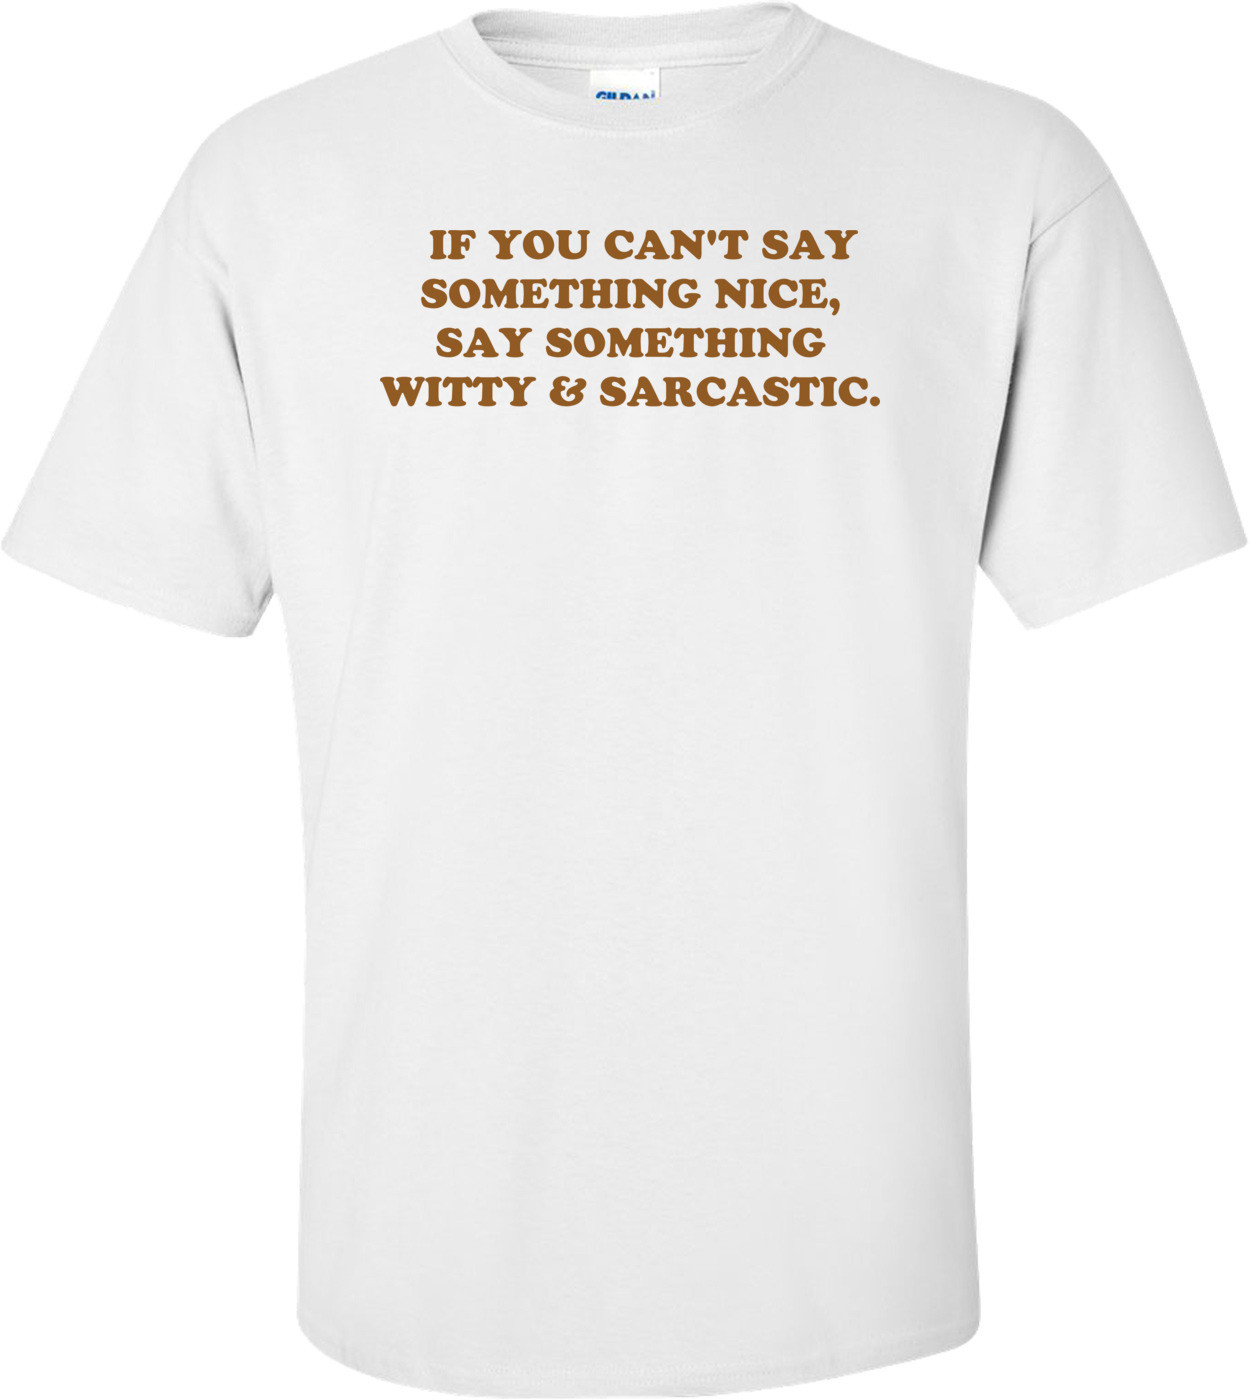 IF YOU CAN'T SAY SOMETHING NICE, SAY SOMETHING WITTY & SARCASTIC. Shirt